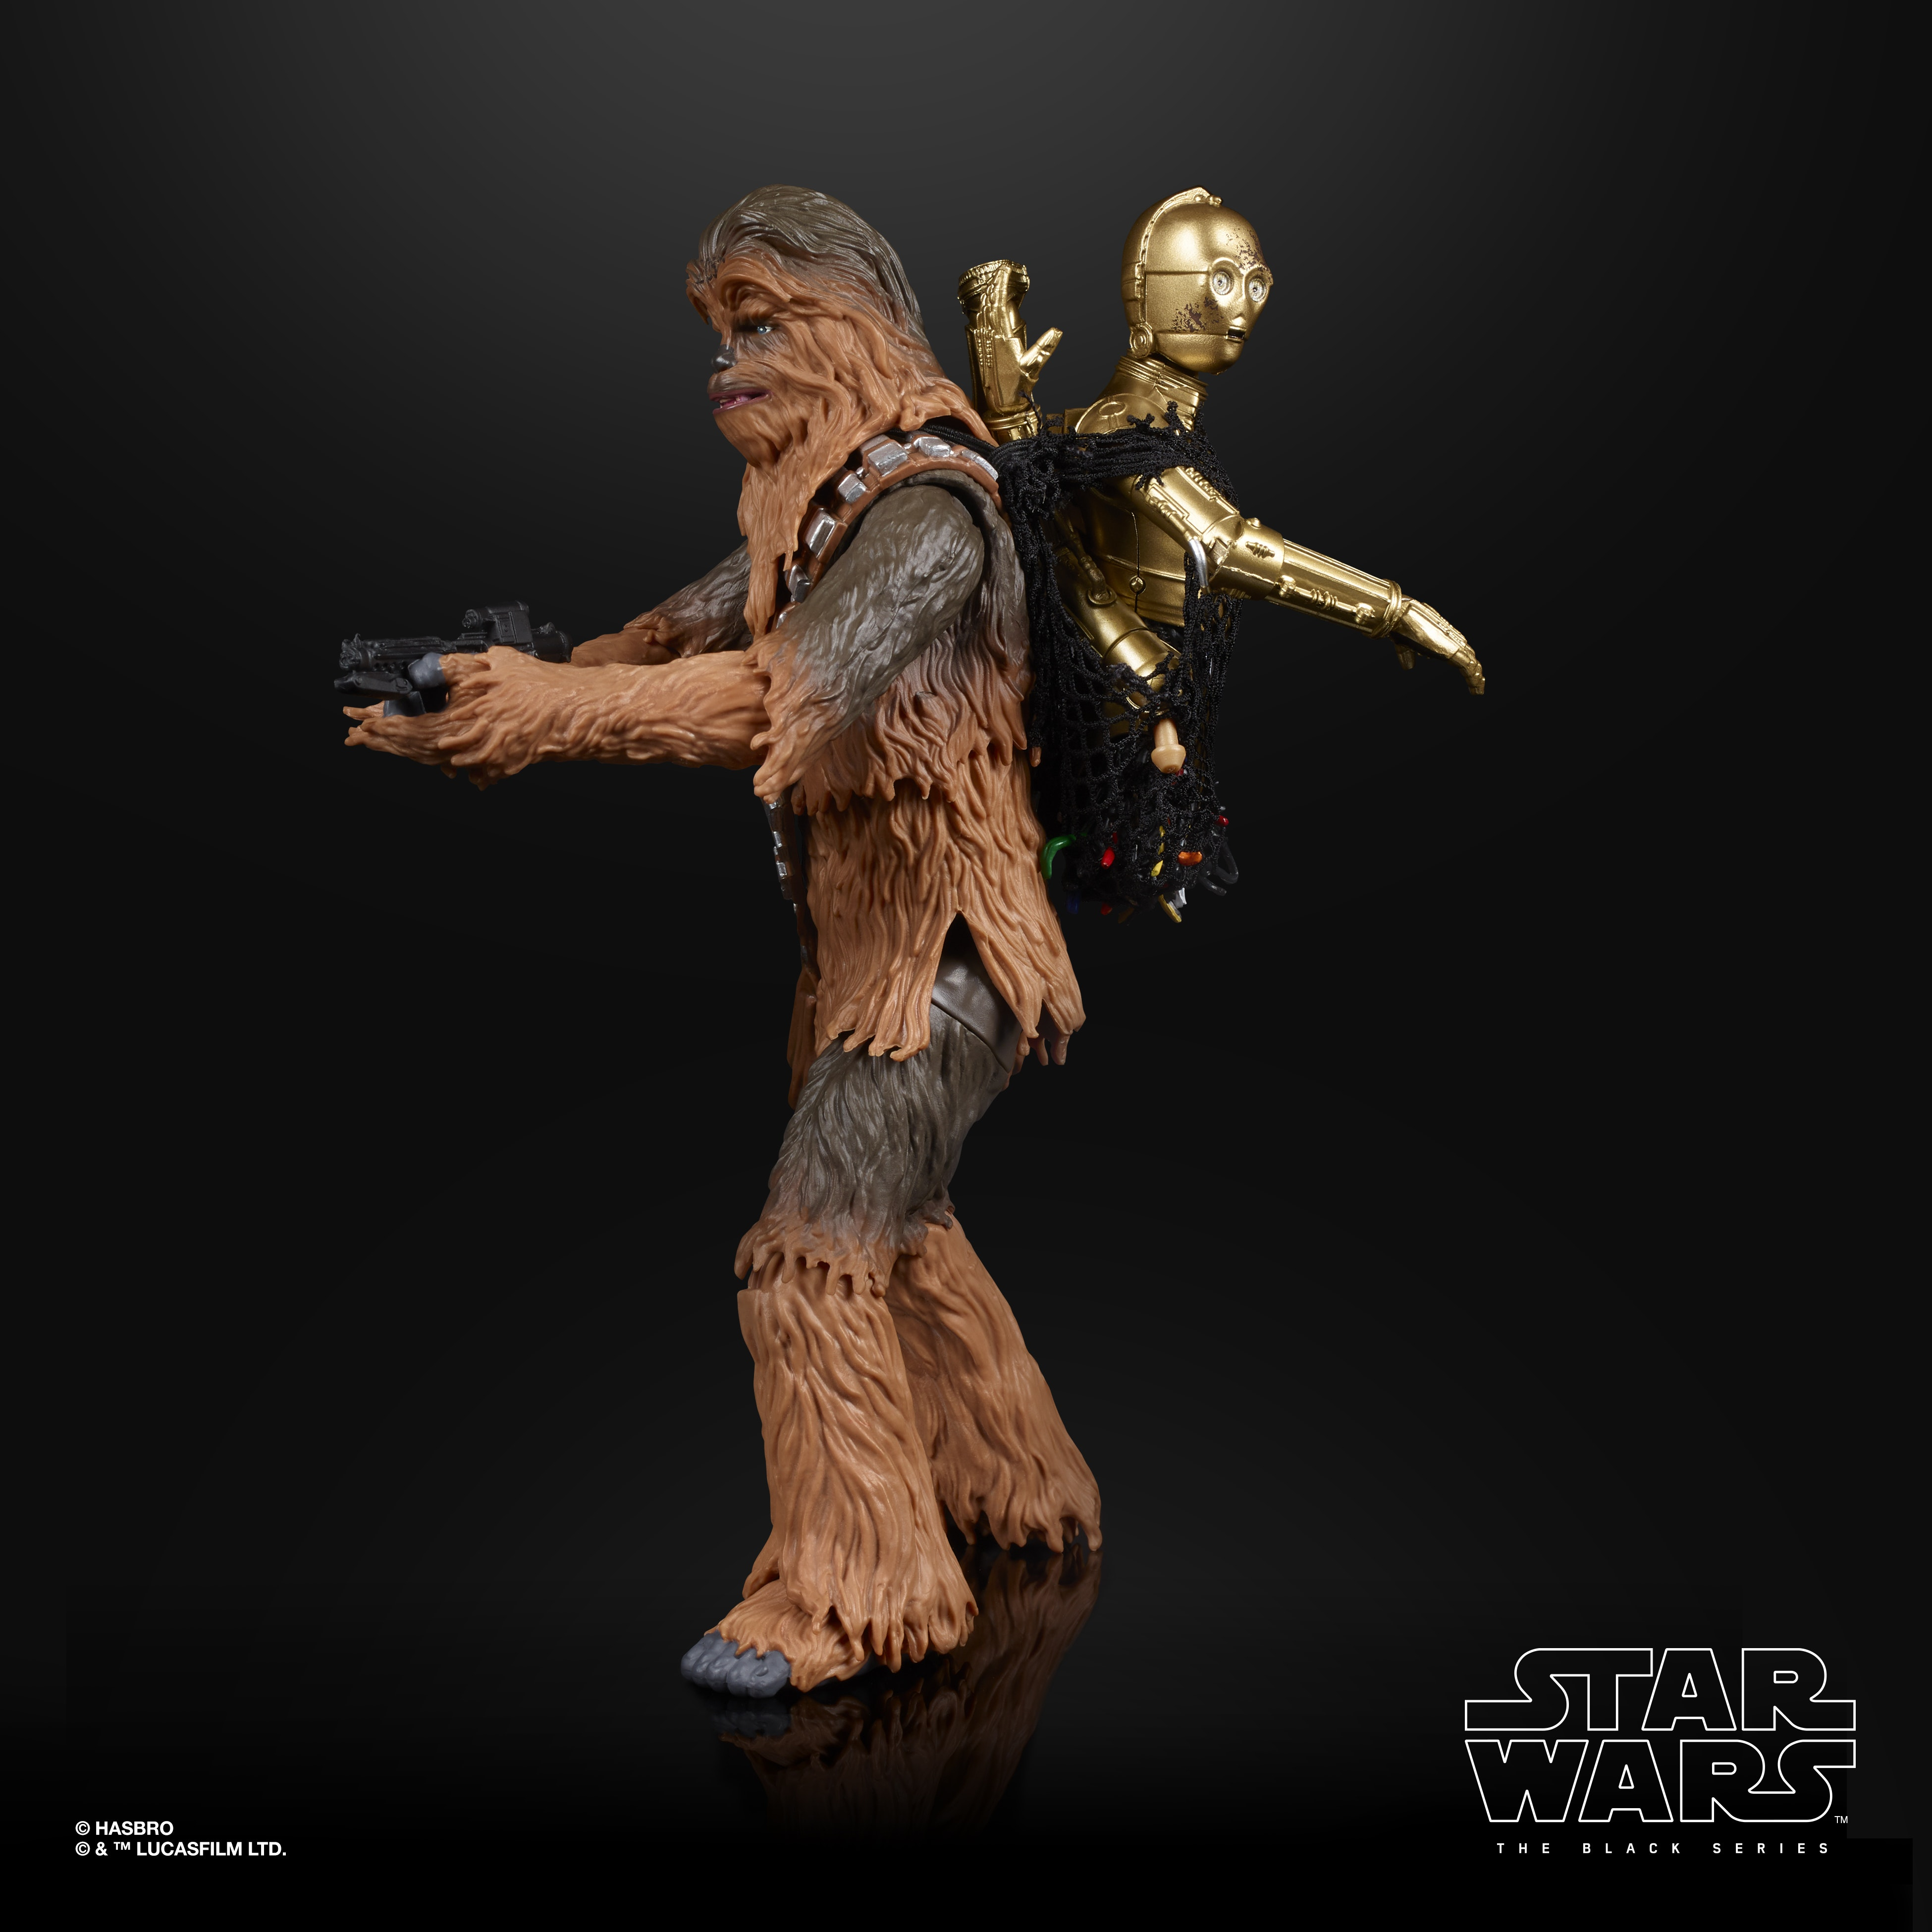 STAR WARS THE BLACK SERIES CHEWBACCA C3PO 2 PACK